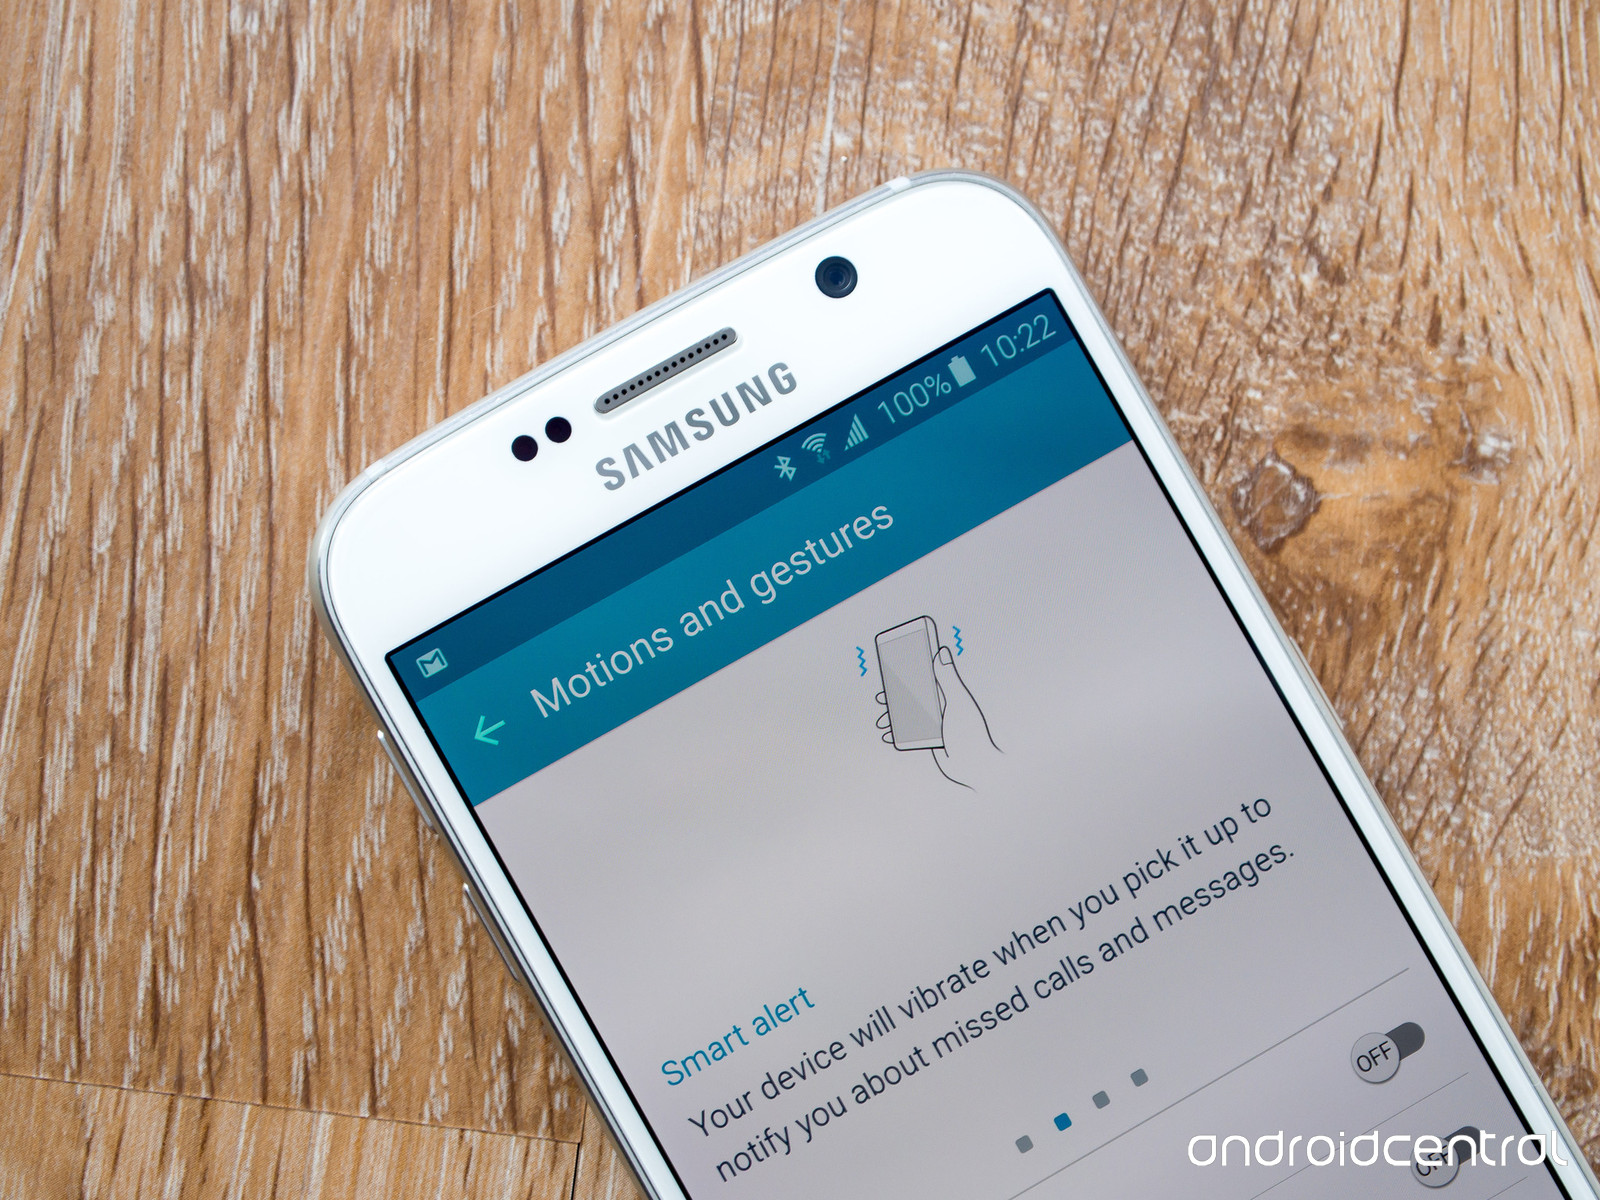 Motion and gesture options on the Galaxy S6 Android Central 1600x1200